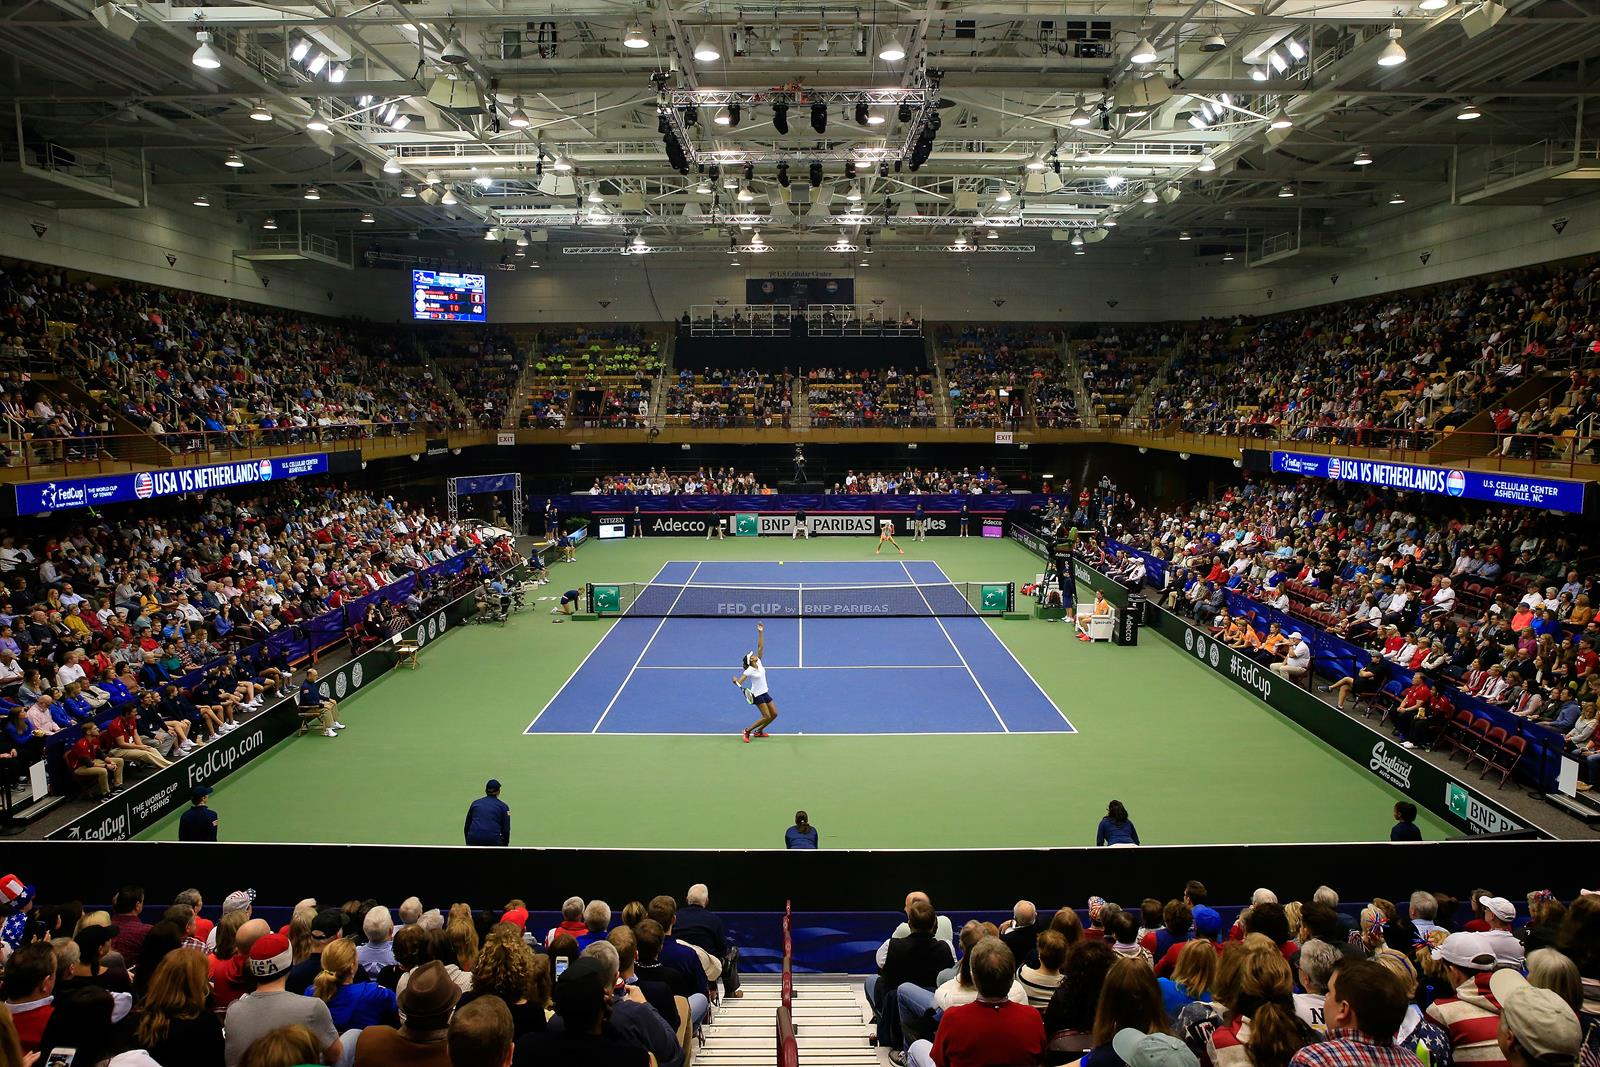 U.S. Cellular Center Fed Cup Arena View